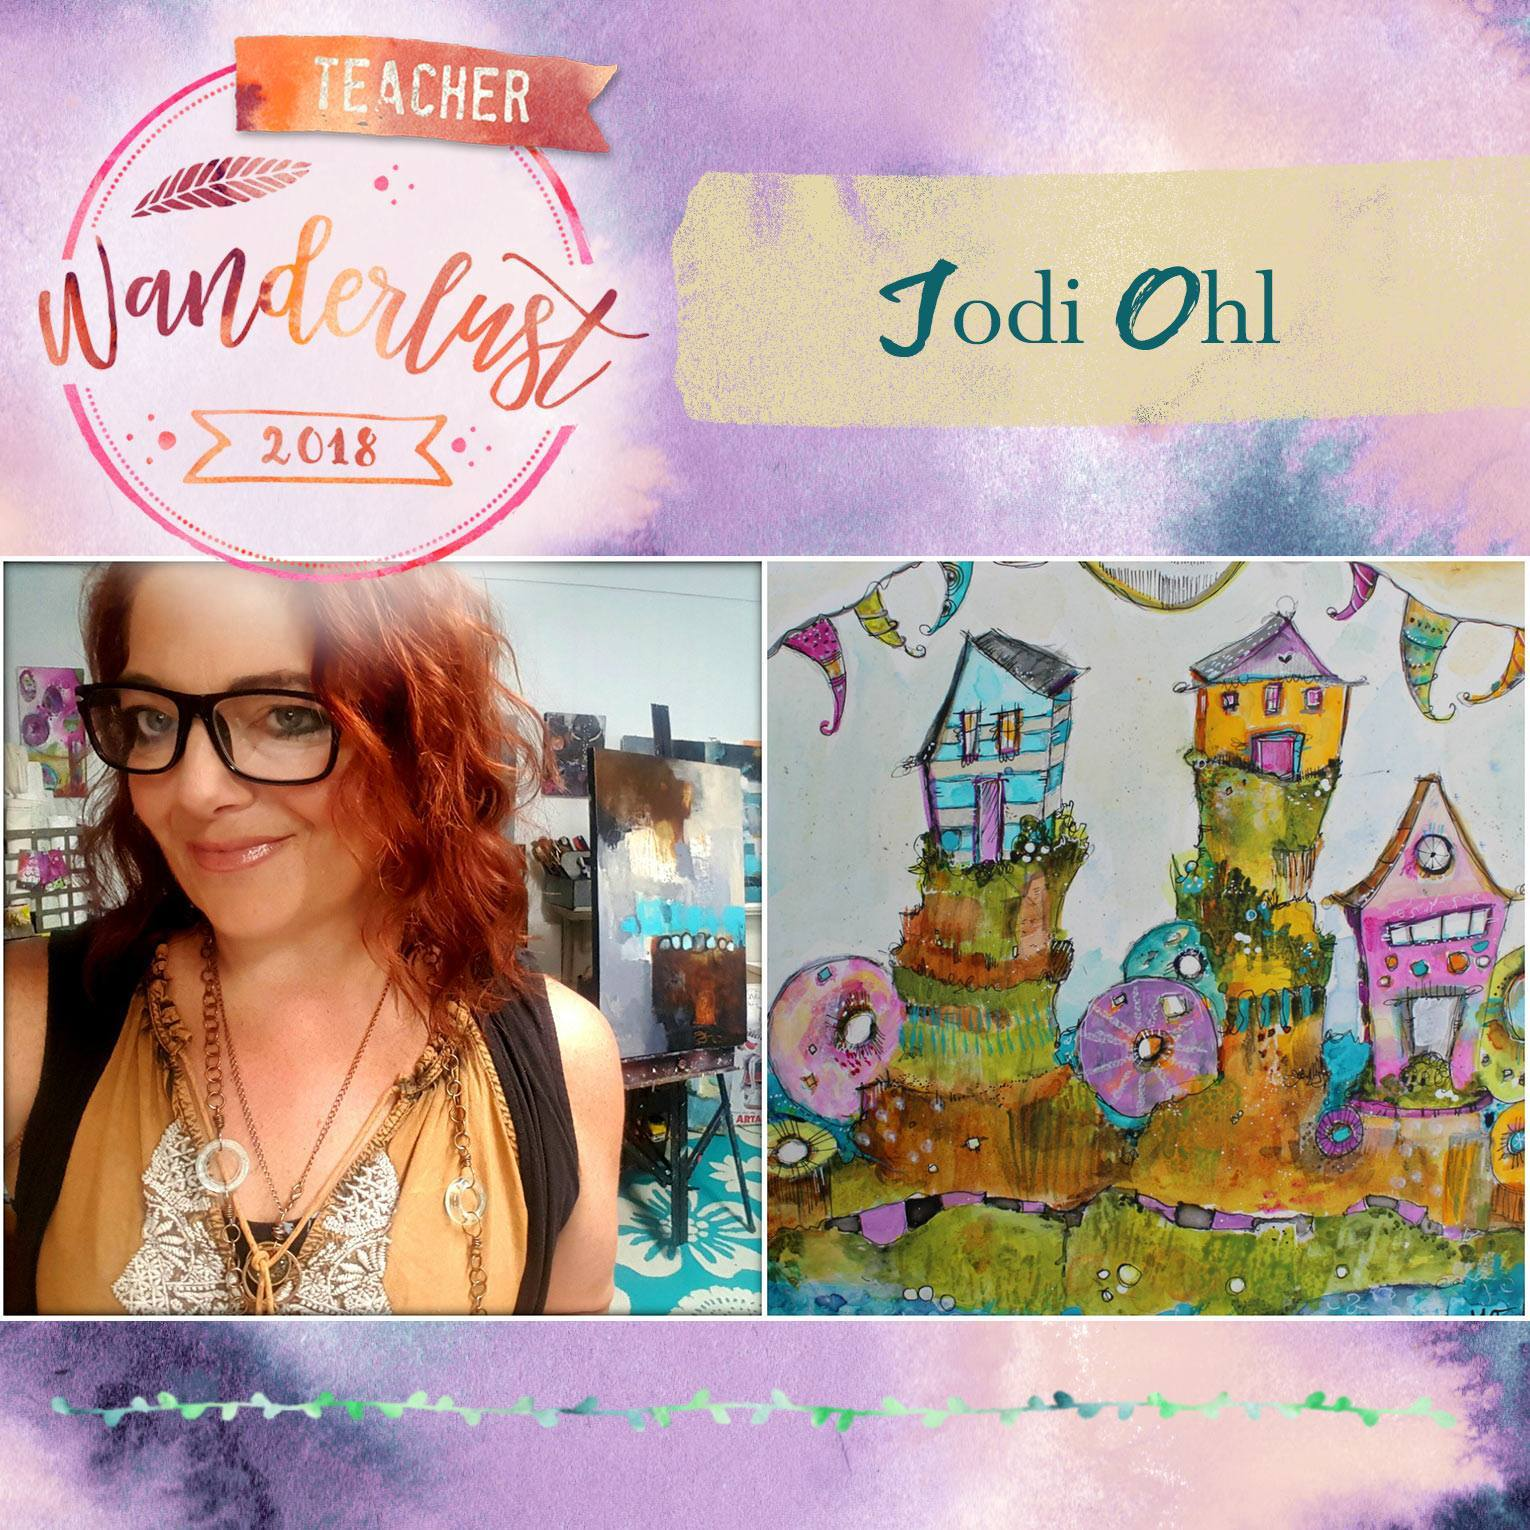 I'm teaching for Wanderlust 2018!